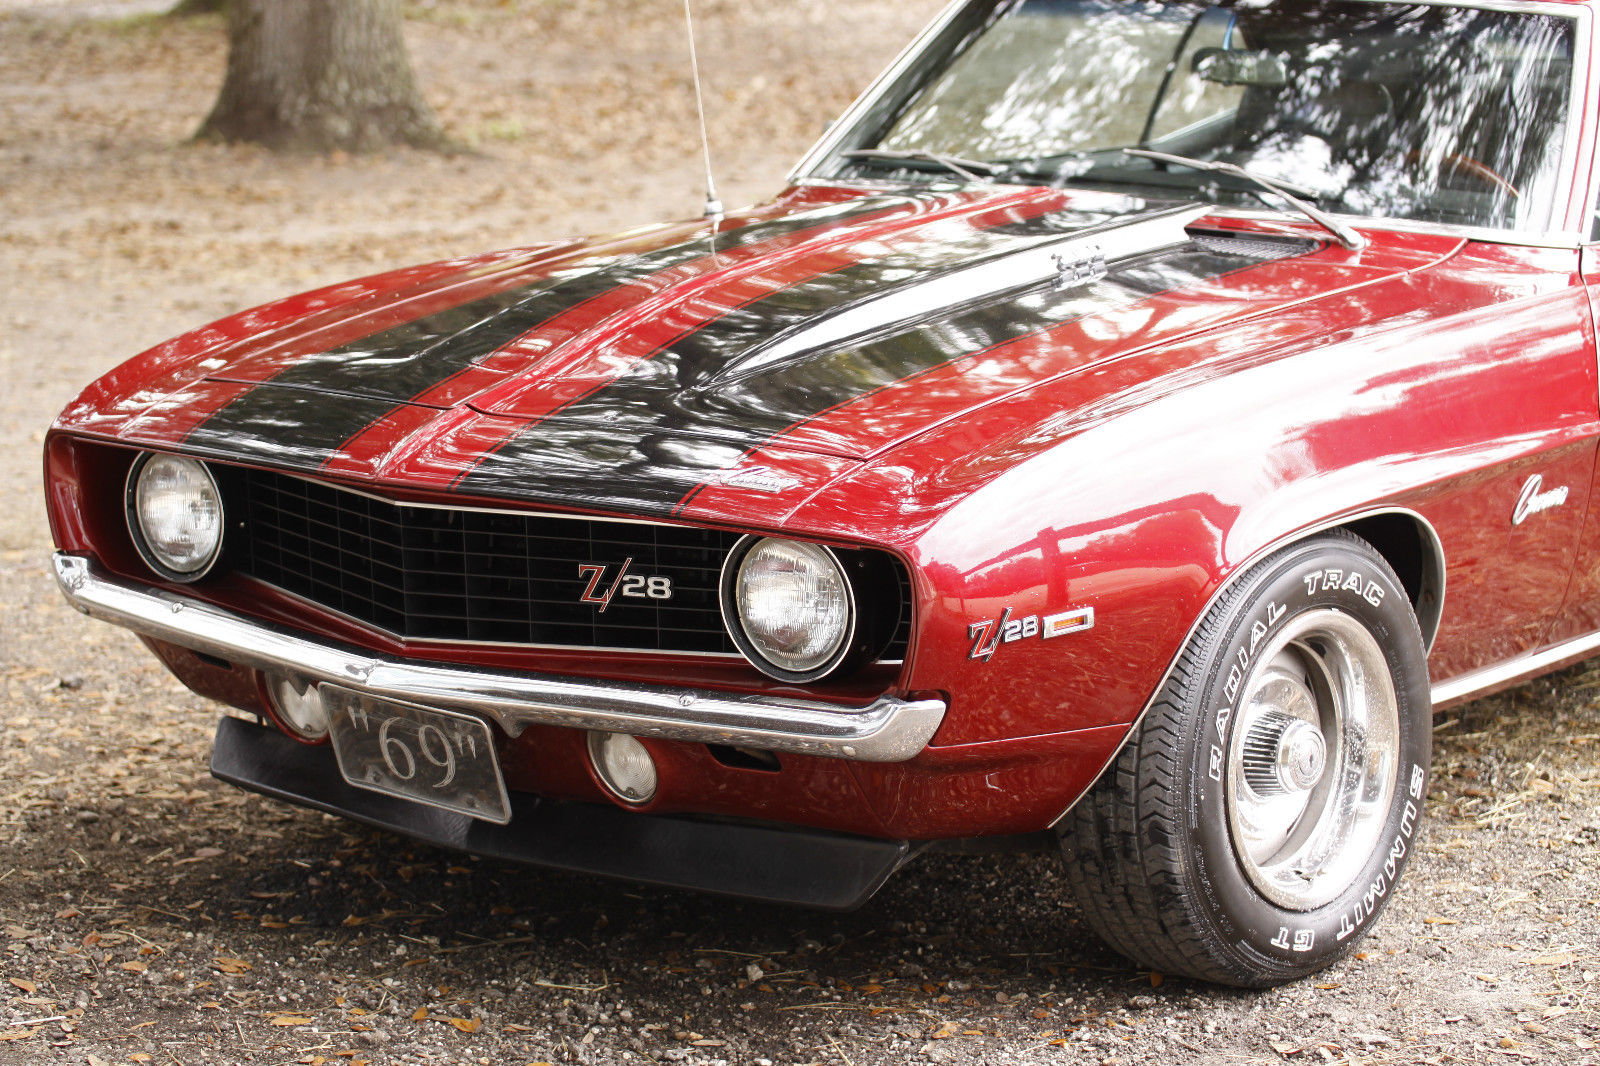 1969 chevrolet camaro z28 red with black striping black interior for sale in melbourne. Black Bedroom Furniture Sets. Home Design Ideas